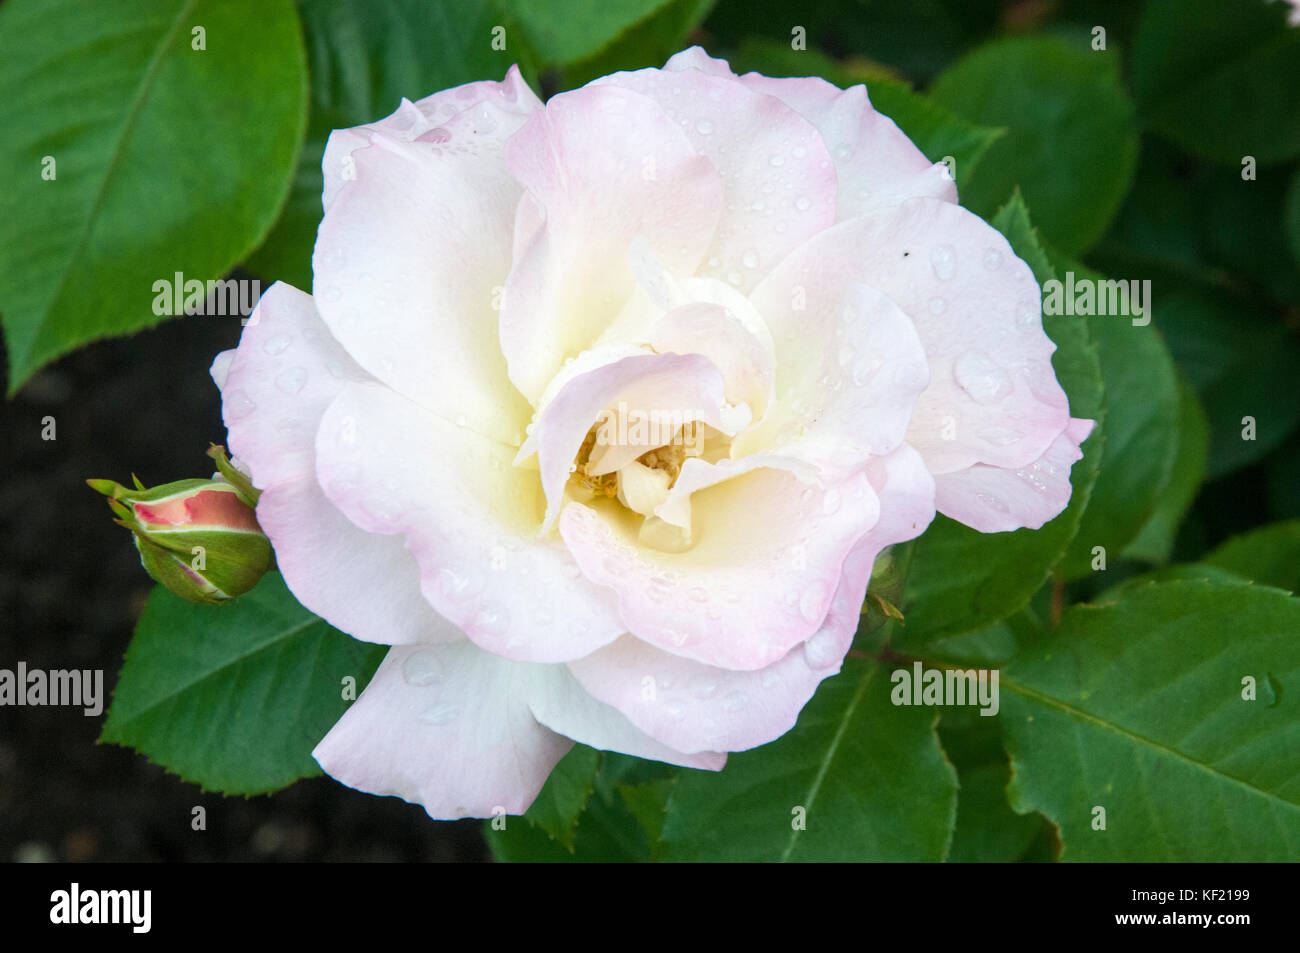 Seduction, a hardy standard rose variety - Stock Image